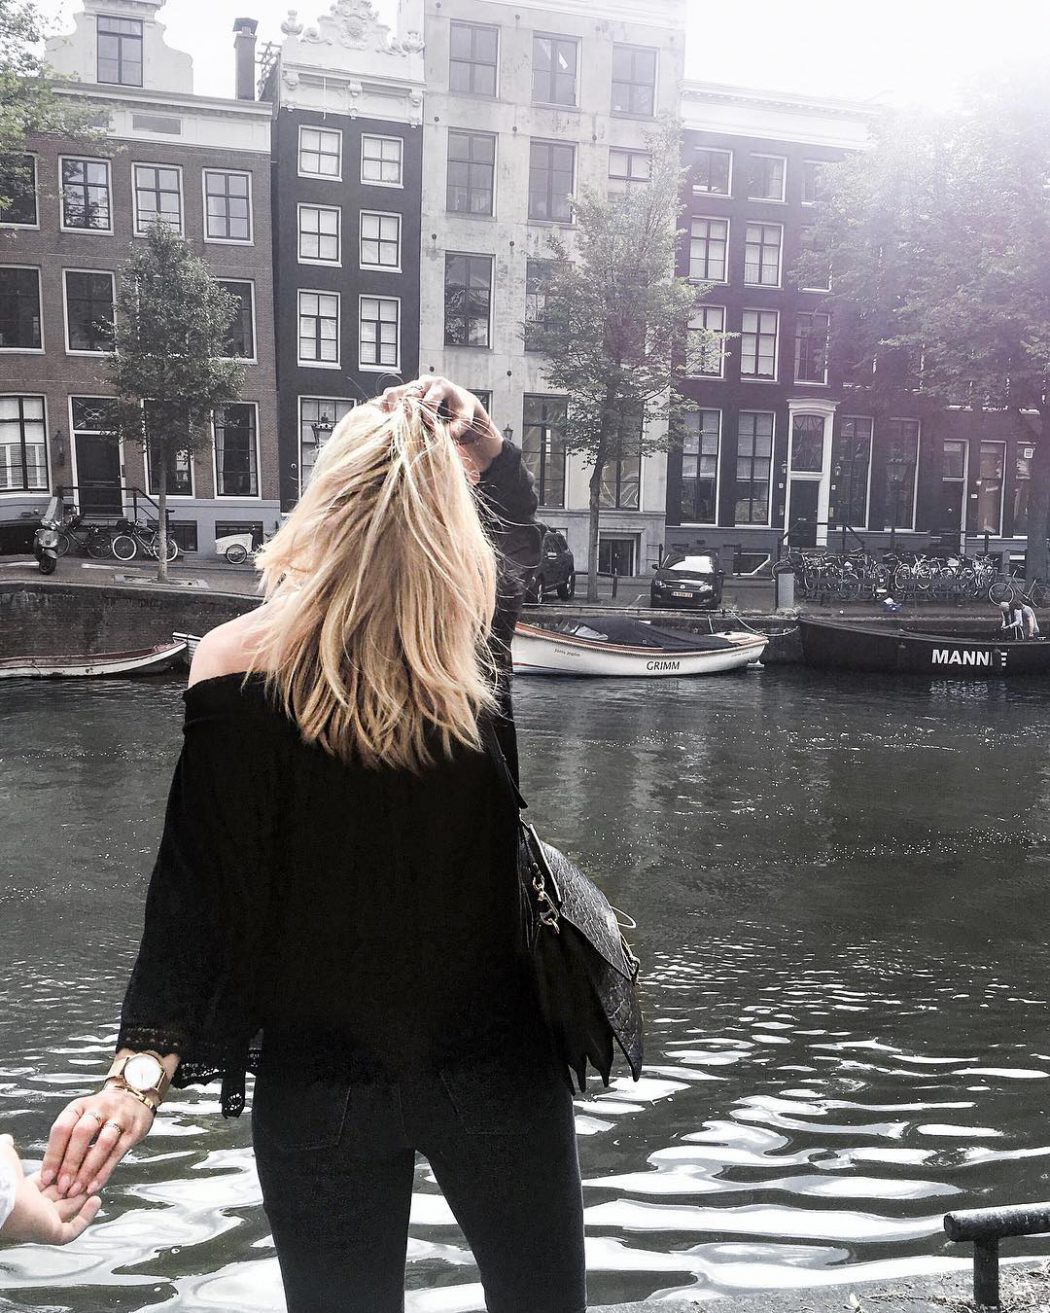 Follow me to the canals of Amsterdam